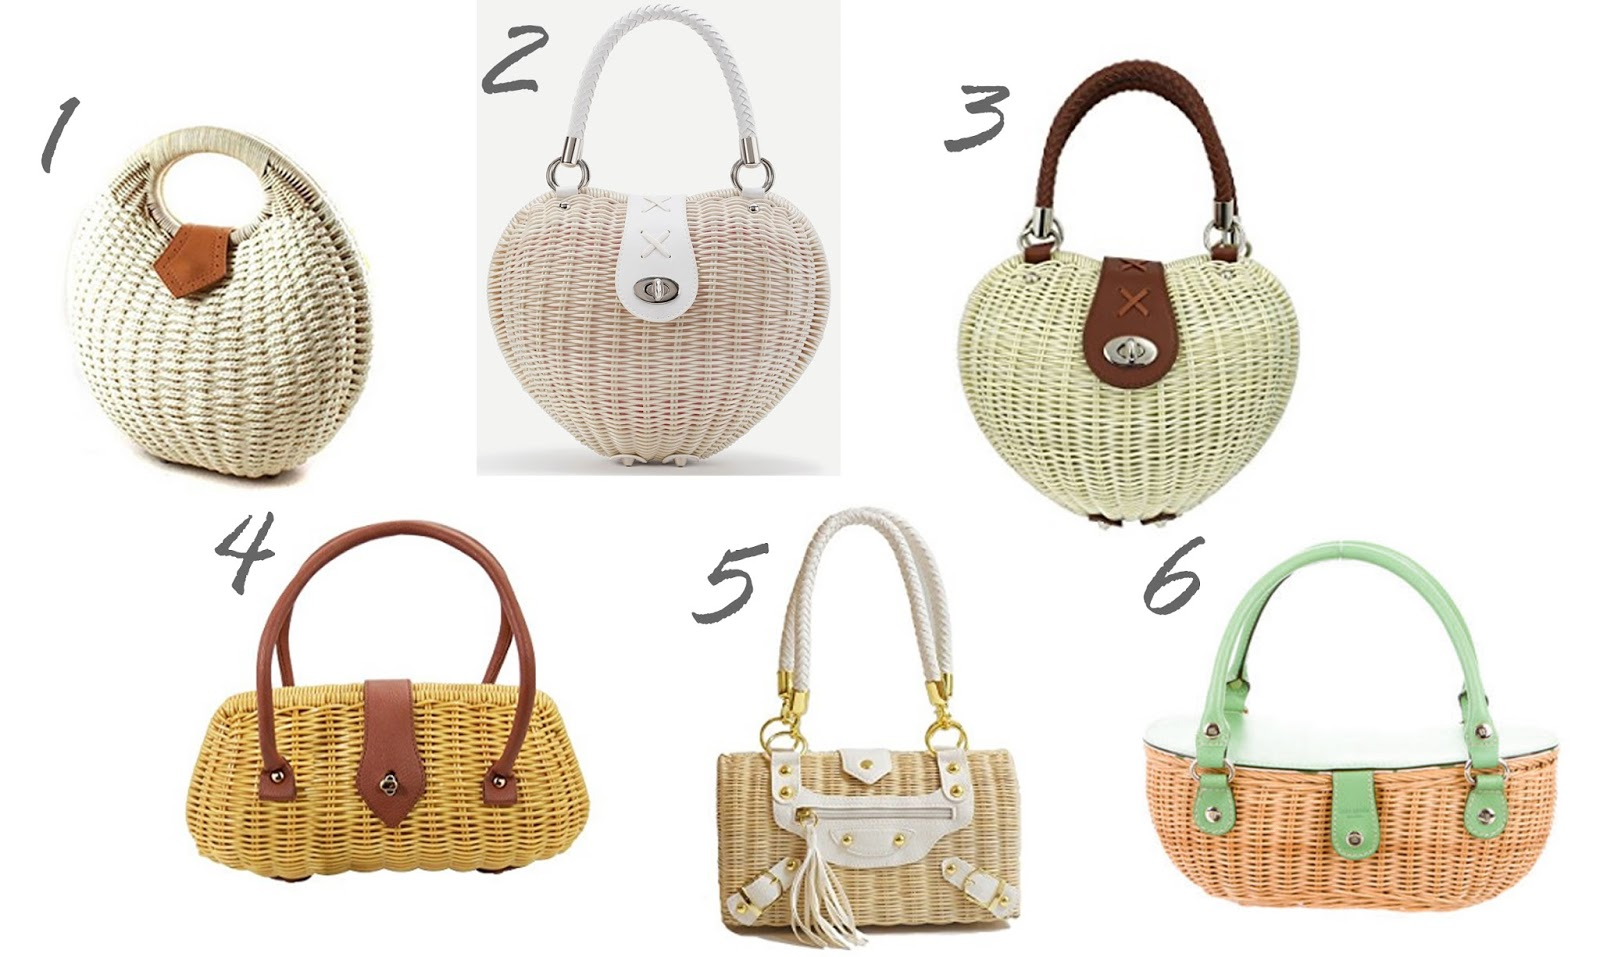 Wicker satchel handbags, wicker satchels, straw satchel and straw satchels